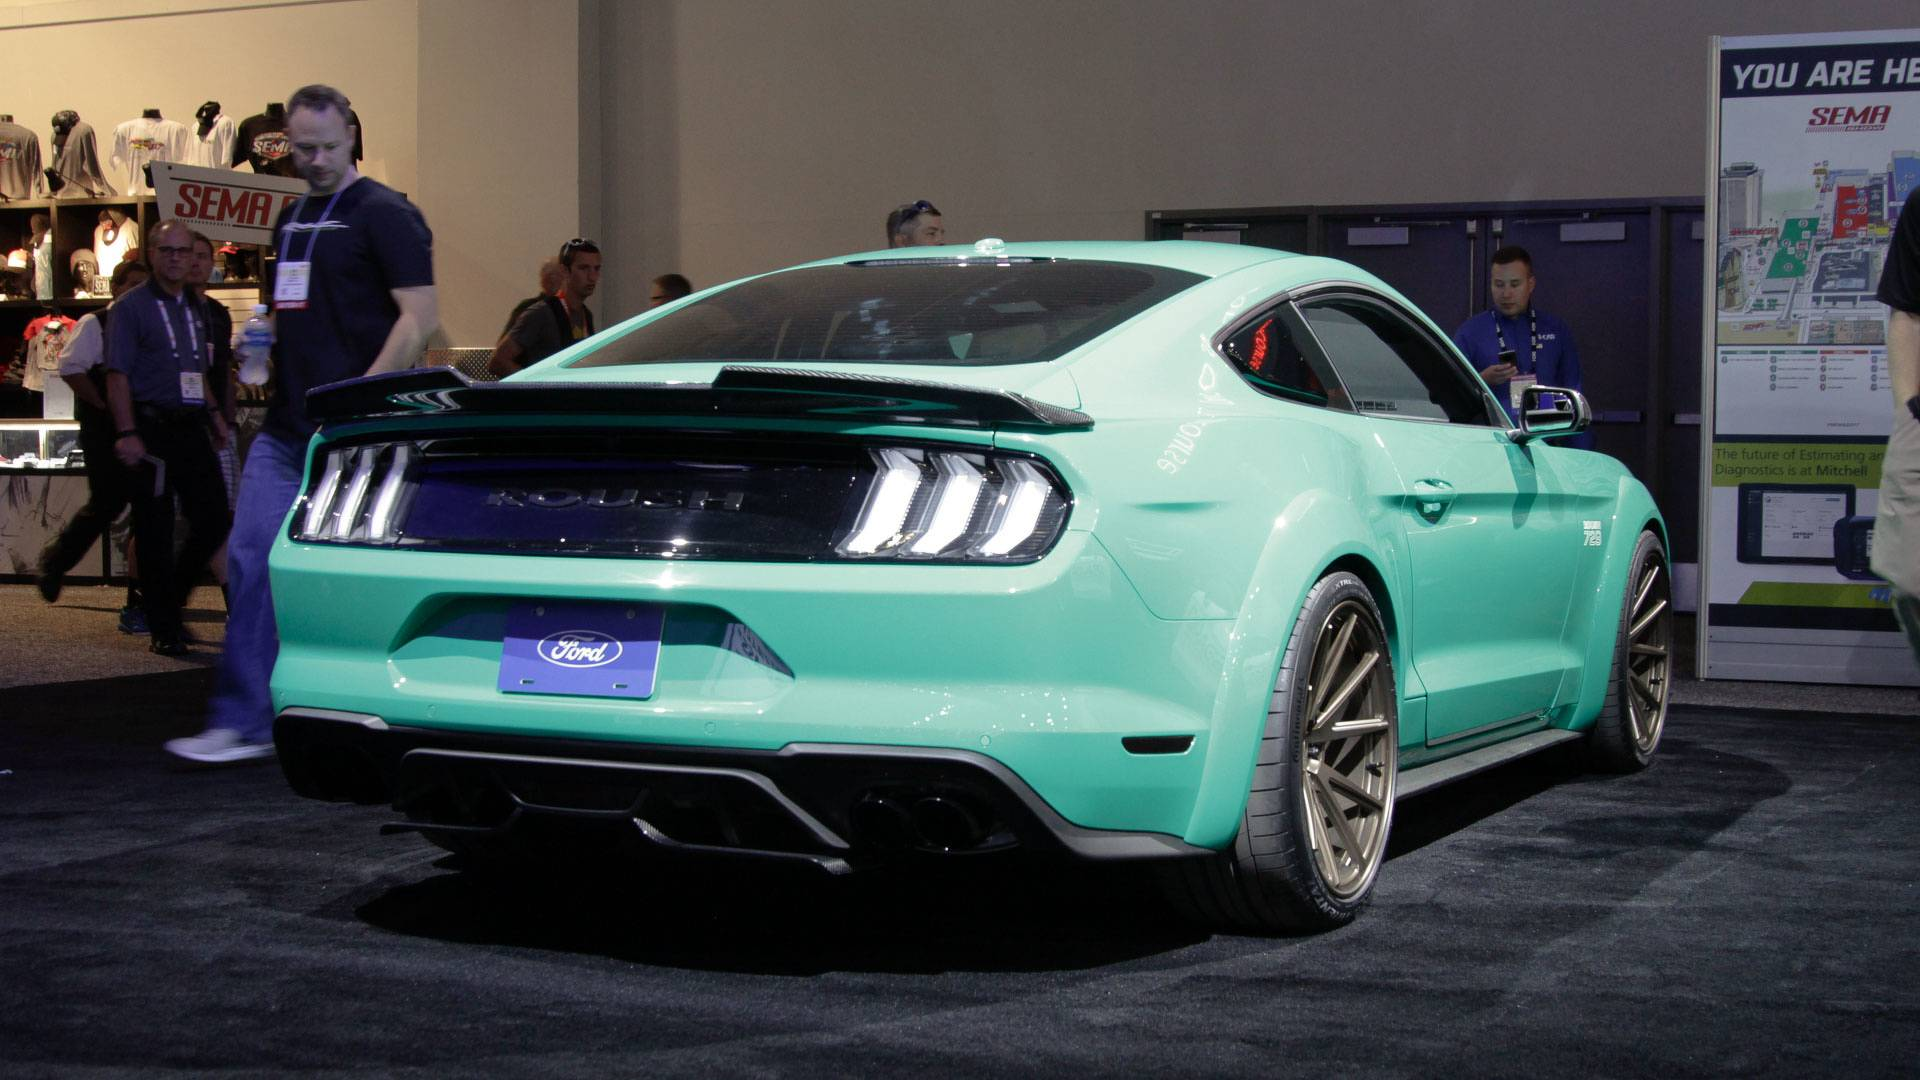 Roush supercharges 2018 ford mustang gt all the way up to 700 hp